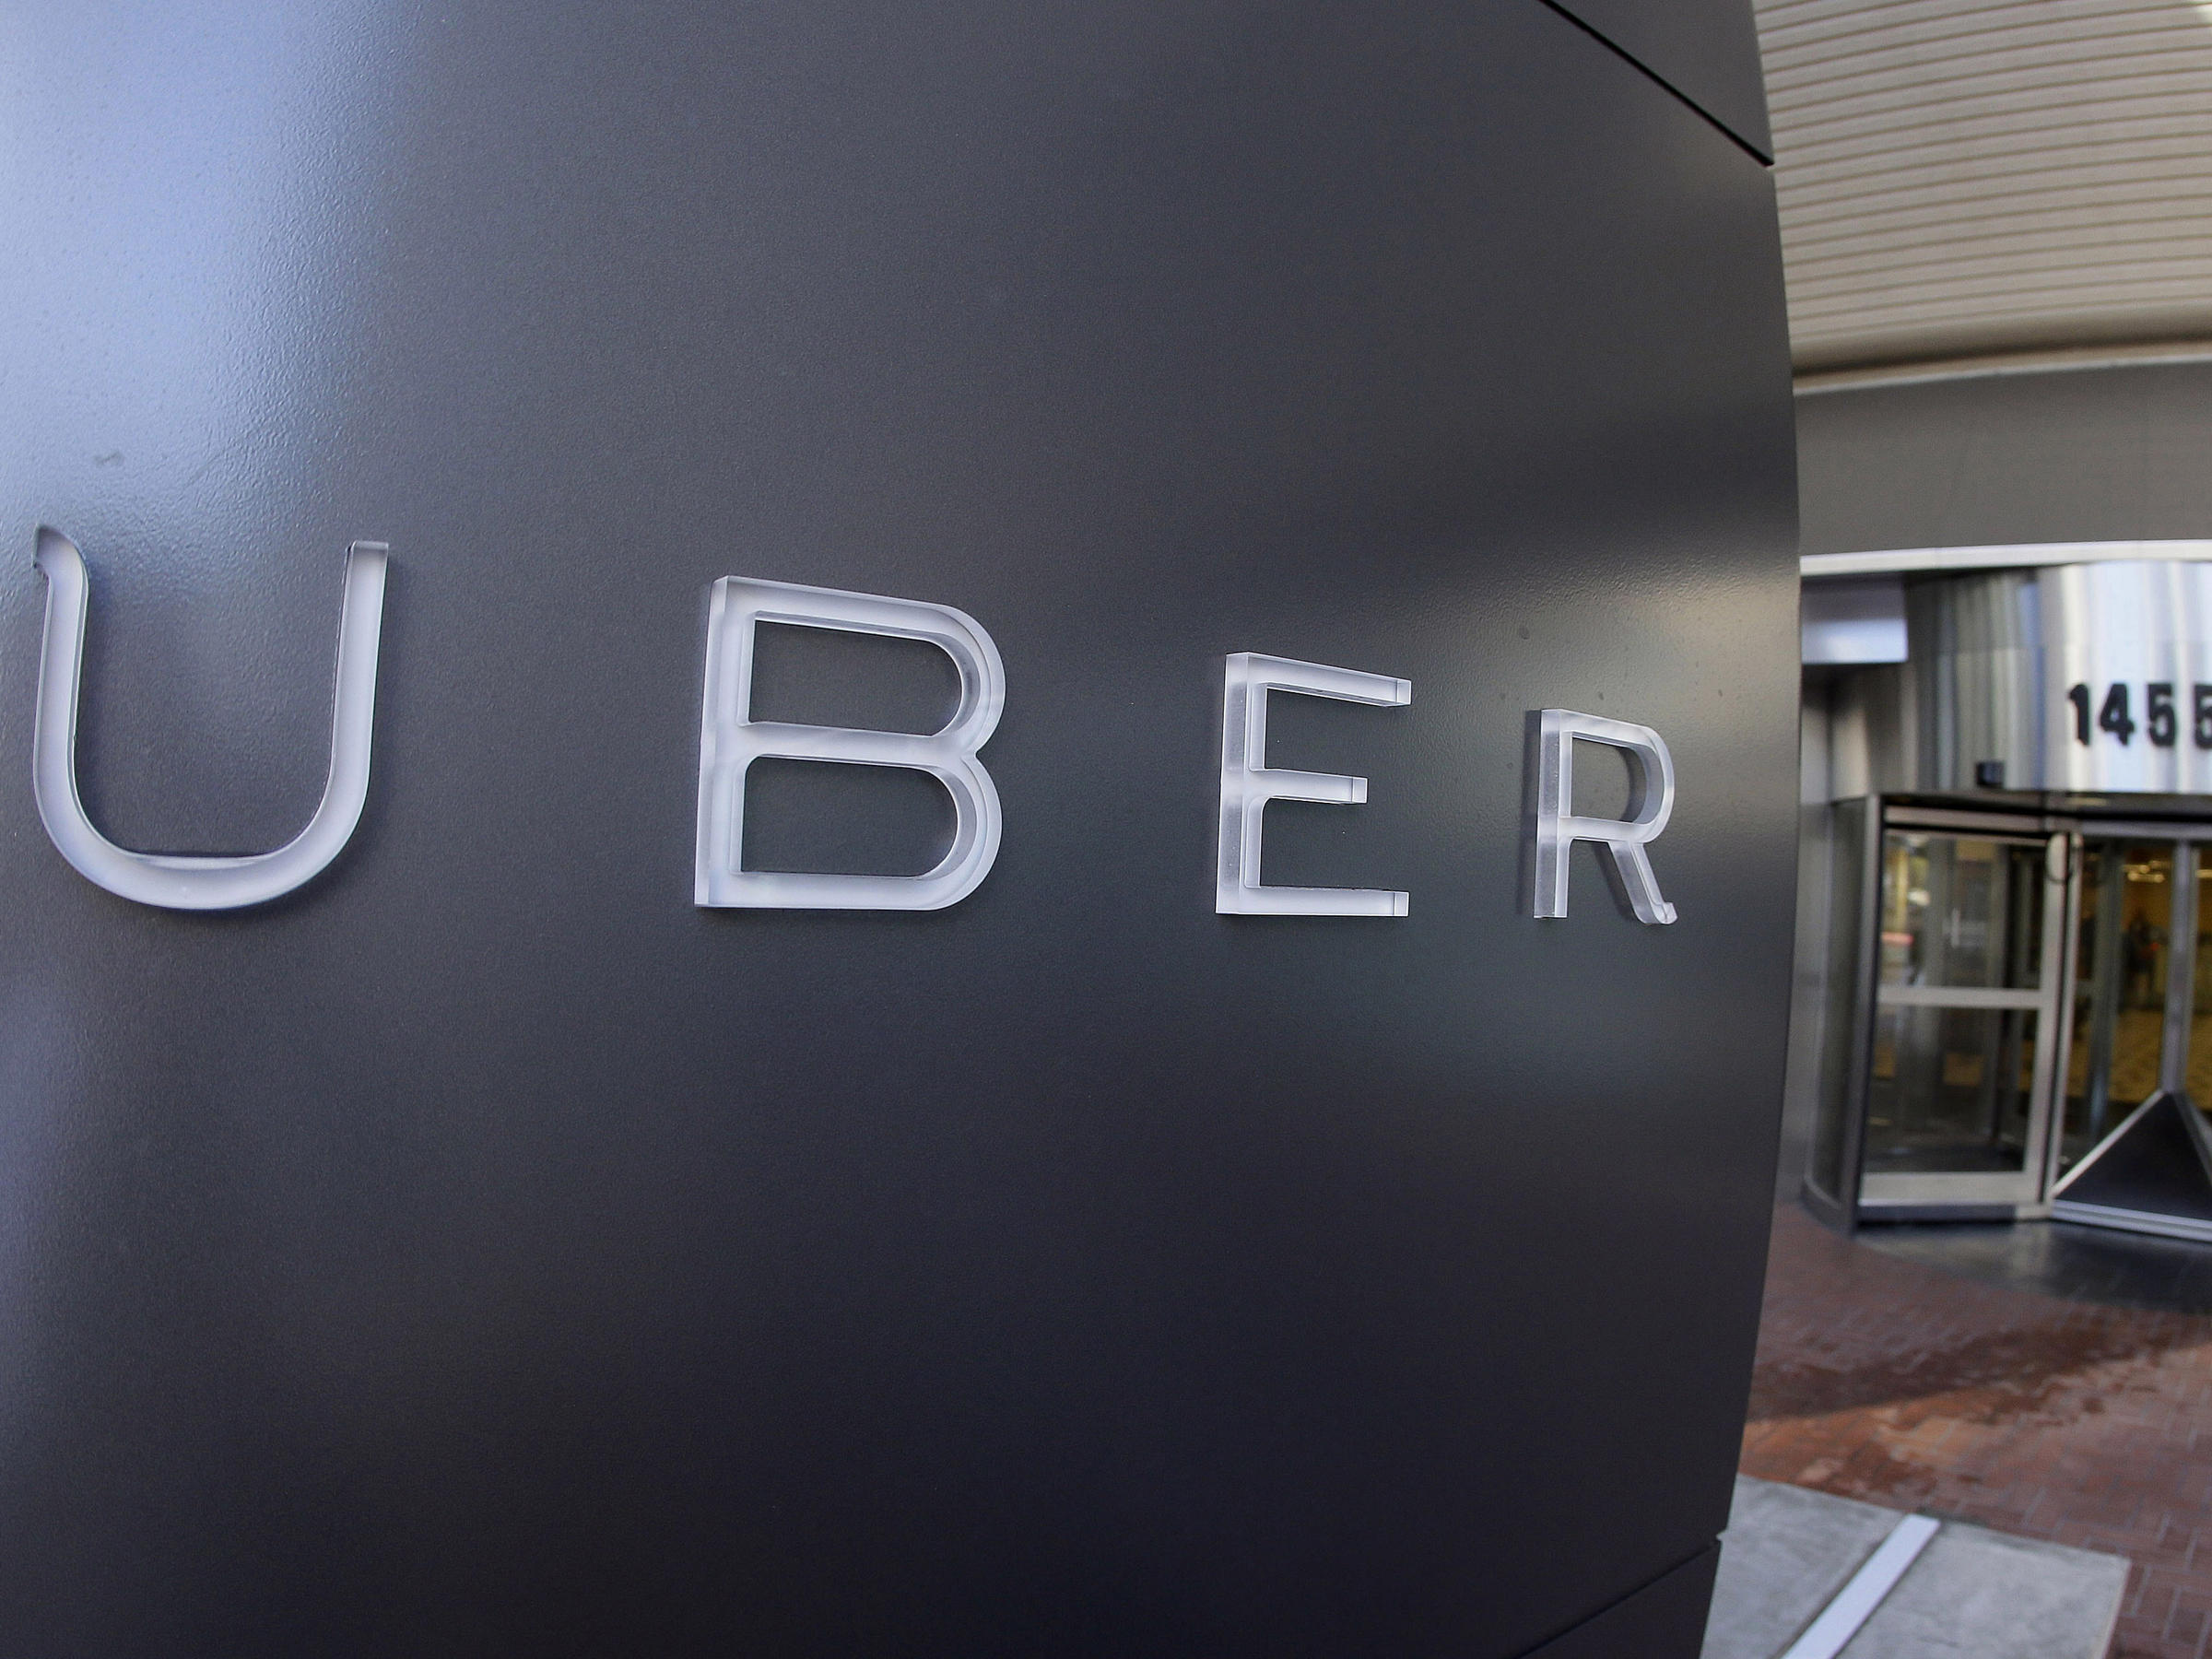 Uber in legal crosshairs over hack cover-up